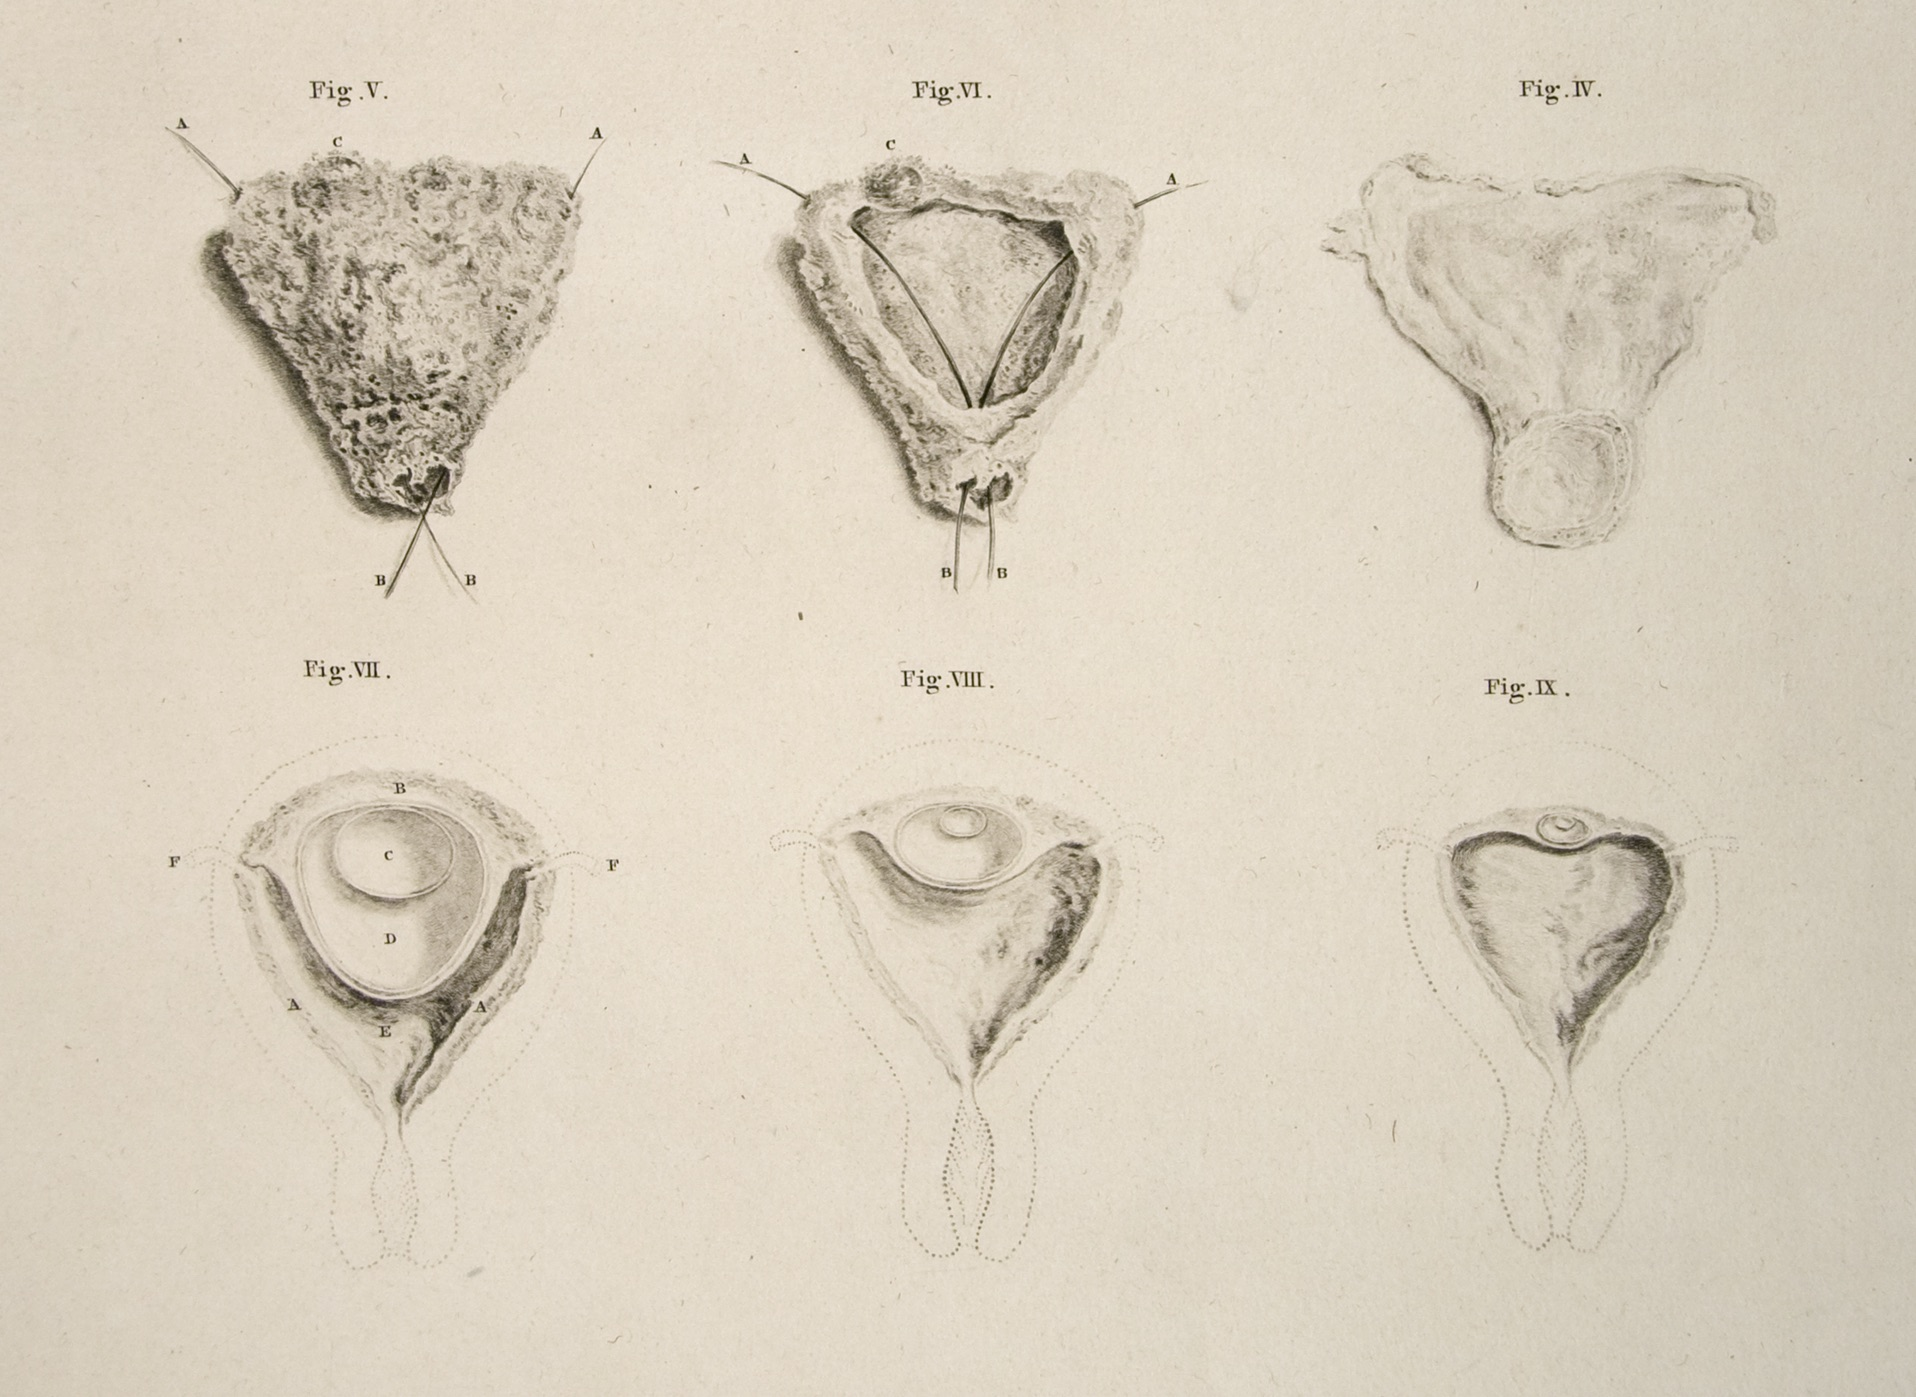 """Six so-called """"conceptions,"""" still invisible to the eye, organized as though they were the same conception. They are arranged in reverse order, retreating towards the moment of generation.Hunter, Anatomy , 34.4-9. Image courtesy University of California, Los Angeles."""